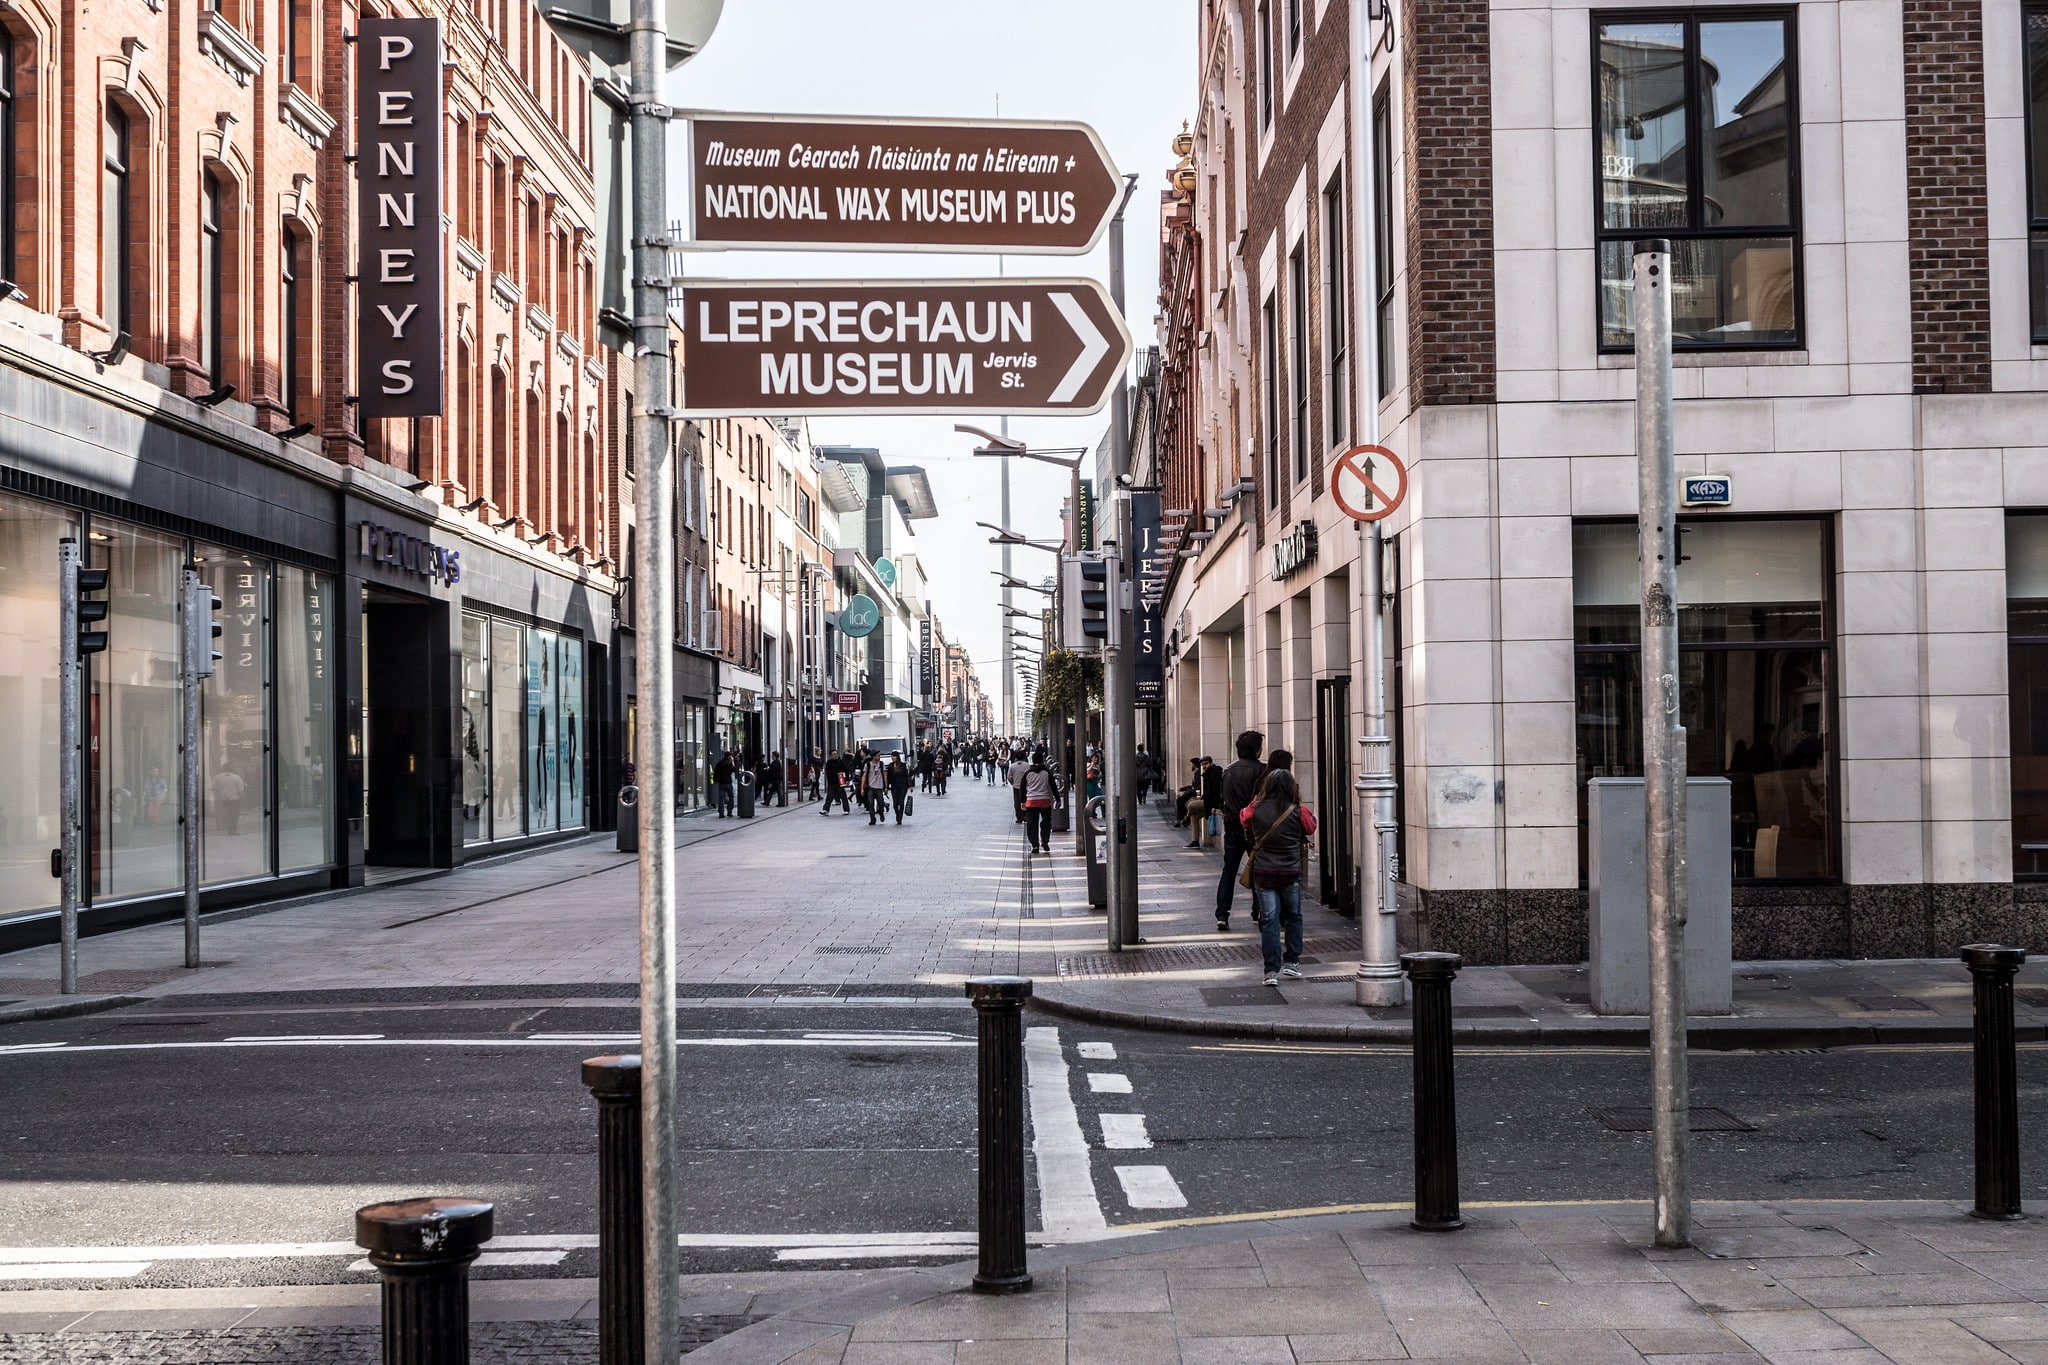 The National Leprechaun Museum in Dublin is off the beaten path in Ireland